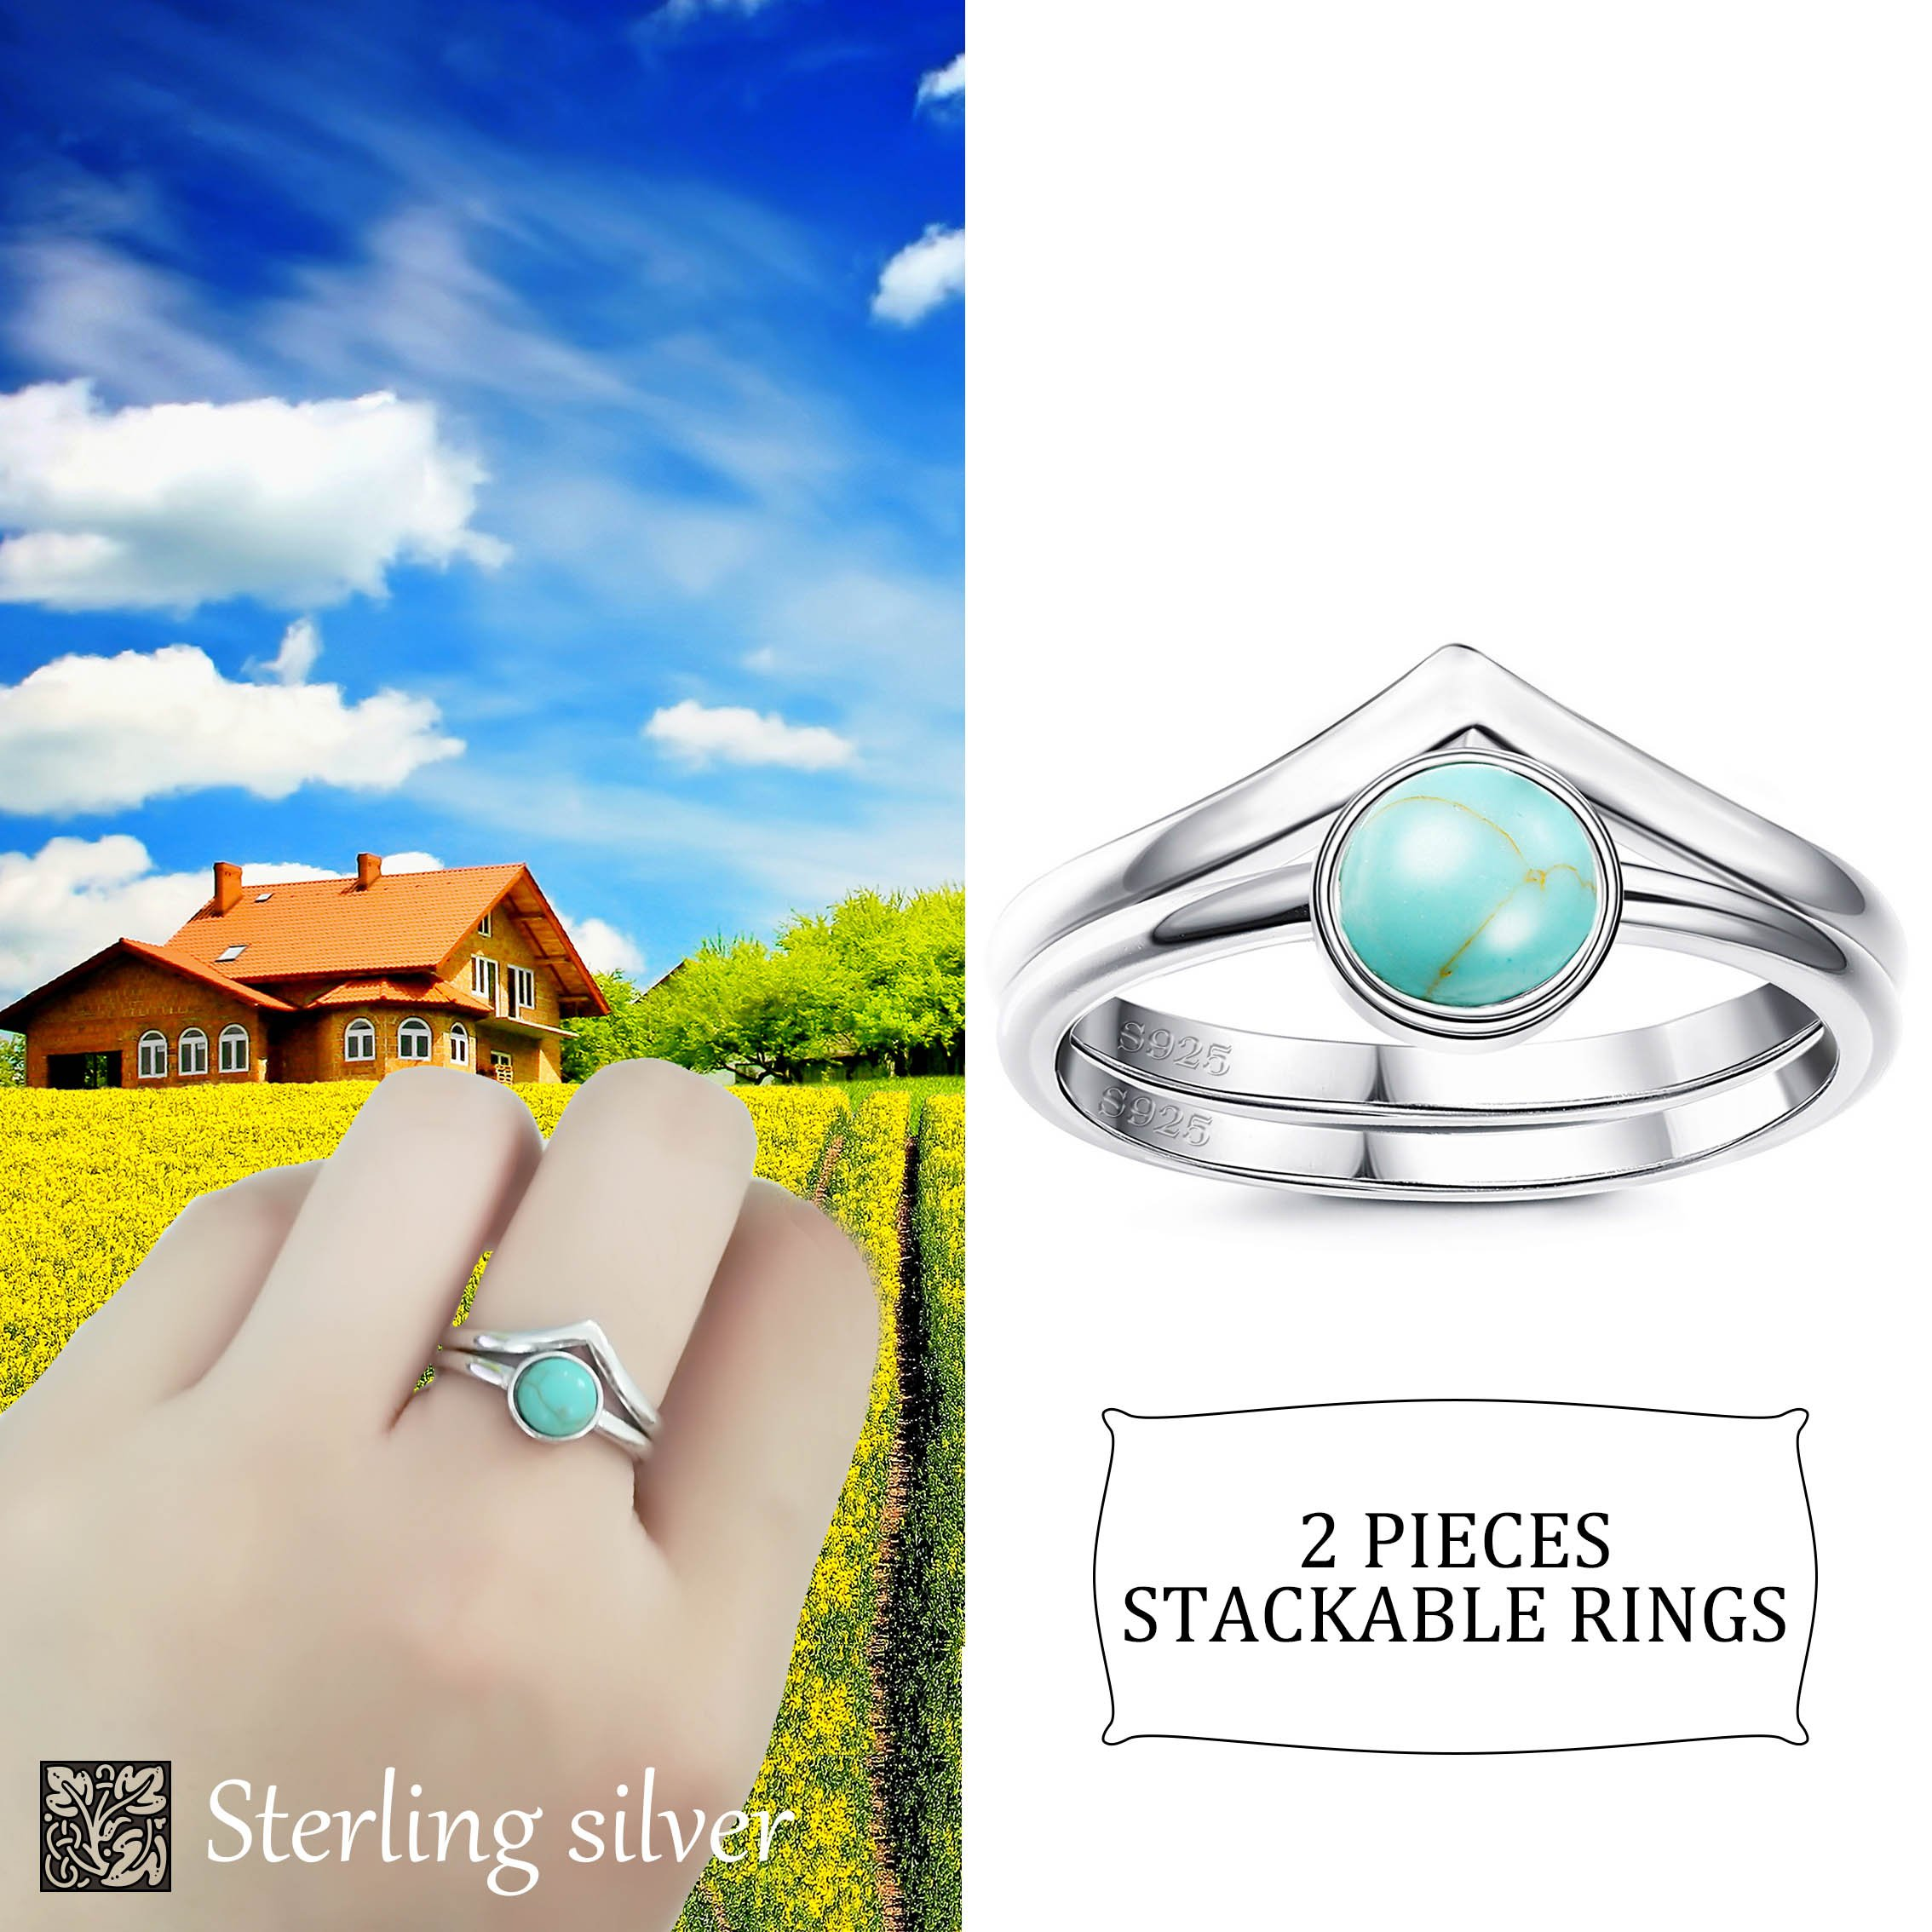 FUNRUN JEWELRY 2 PCS Sterling Silver Stackable Rings for Women Girls Chevron Thumb Turquoise Rings Set High Polish Size 7